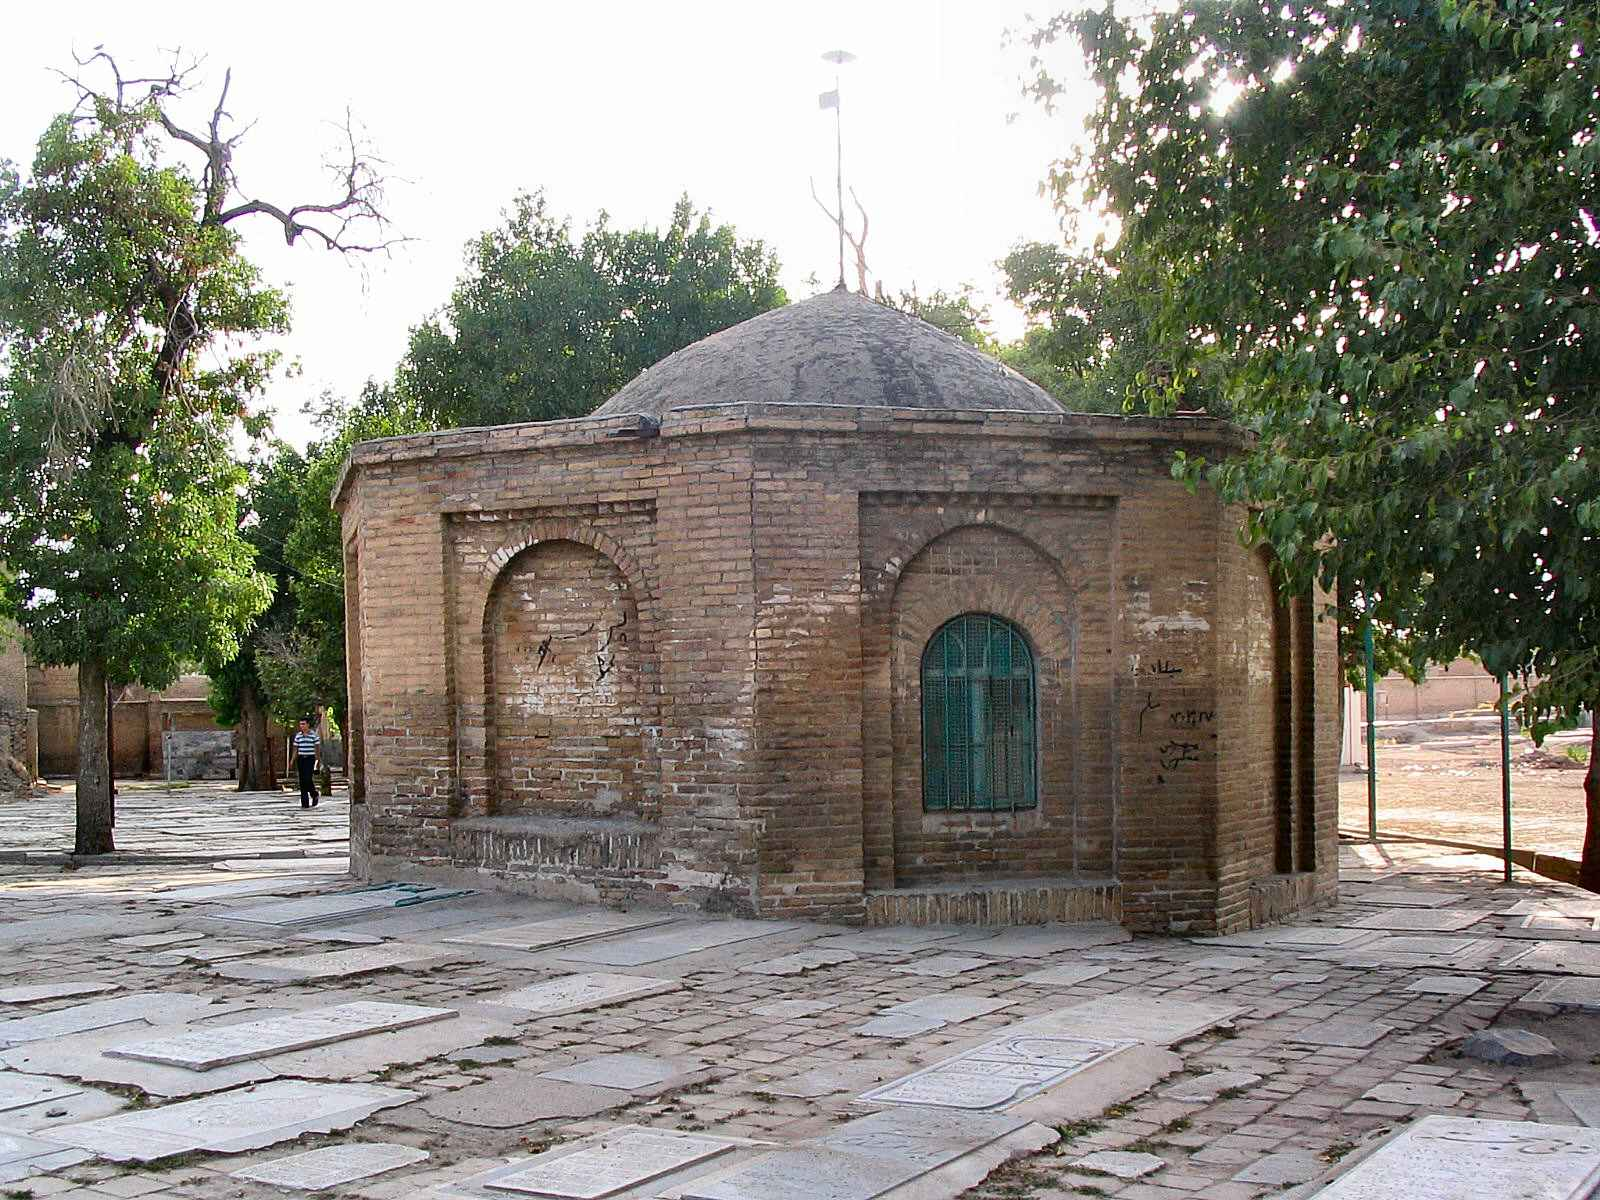 Imamzadeh Ja'far